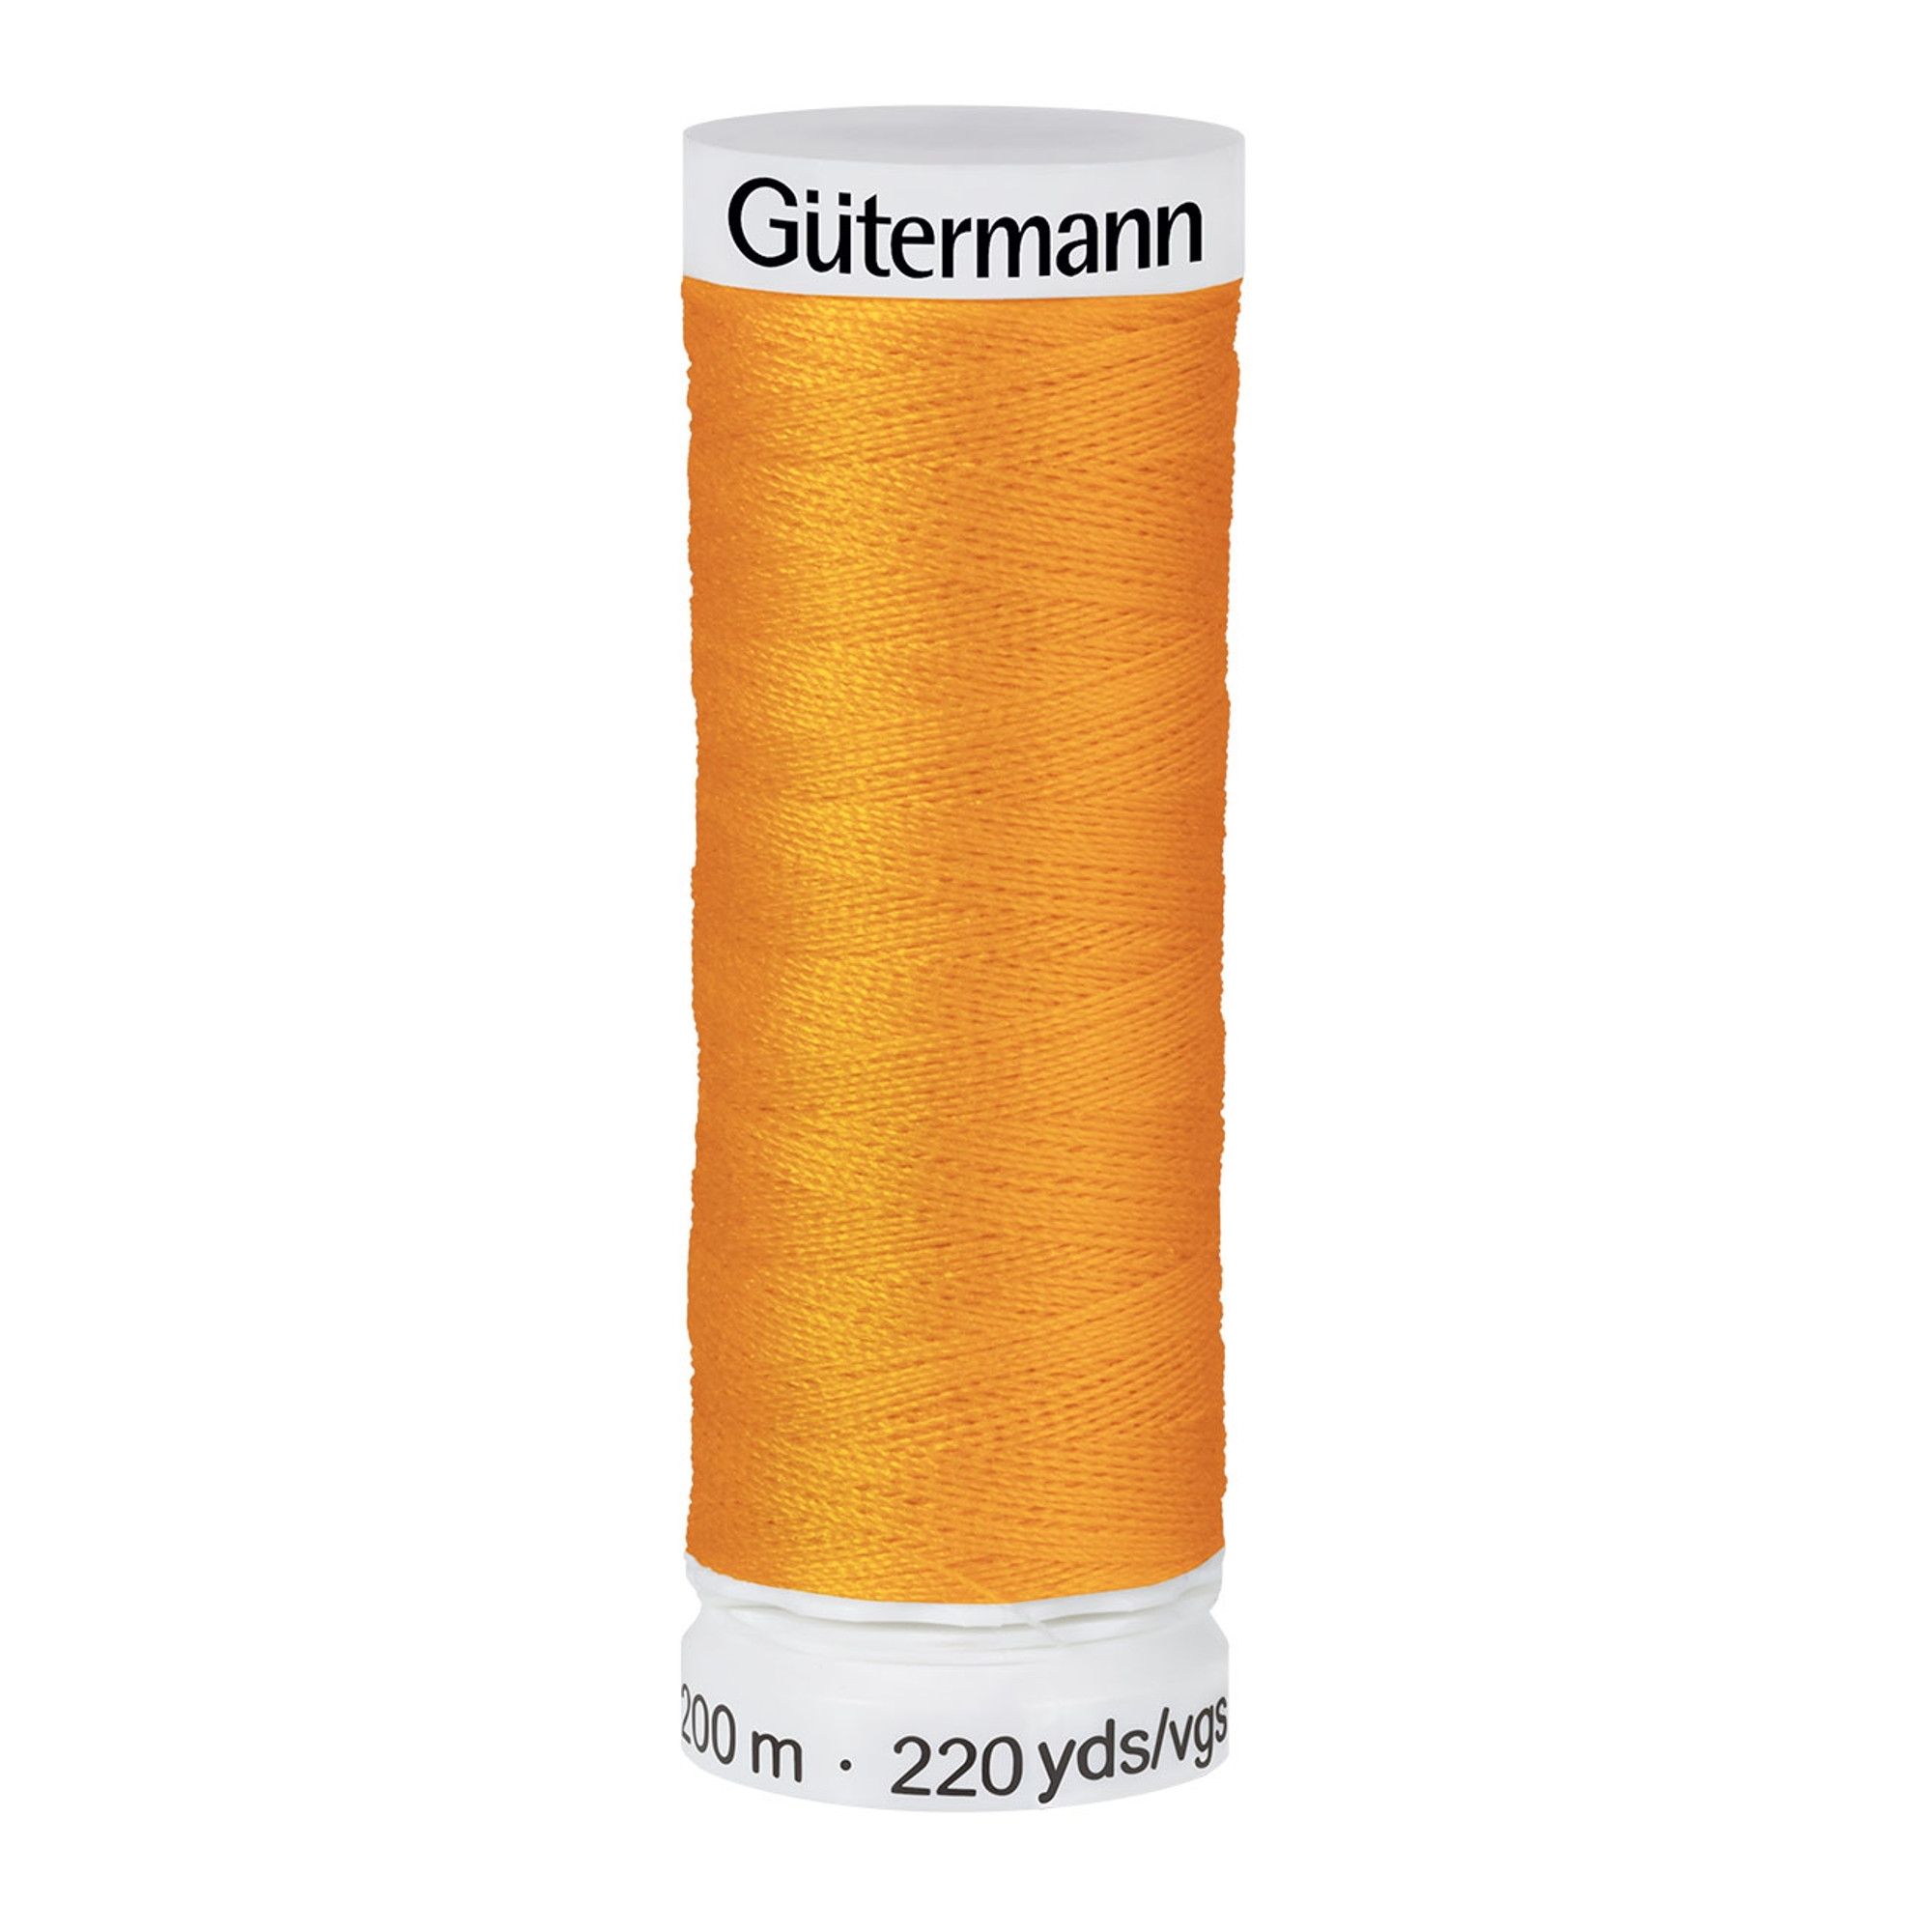 Gütermann Allesnäher (362) topas | 200M-362 | orange